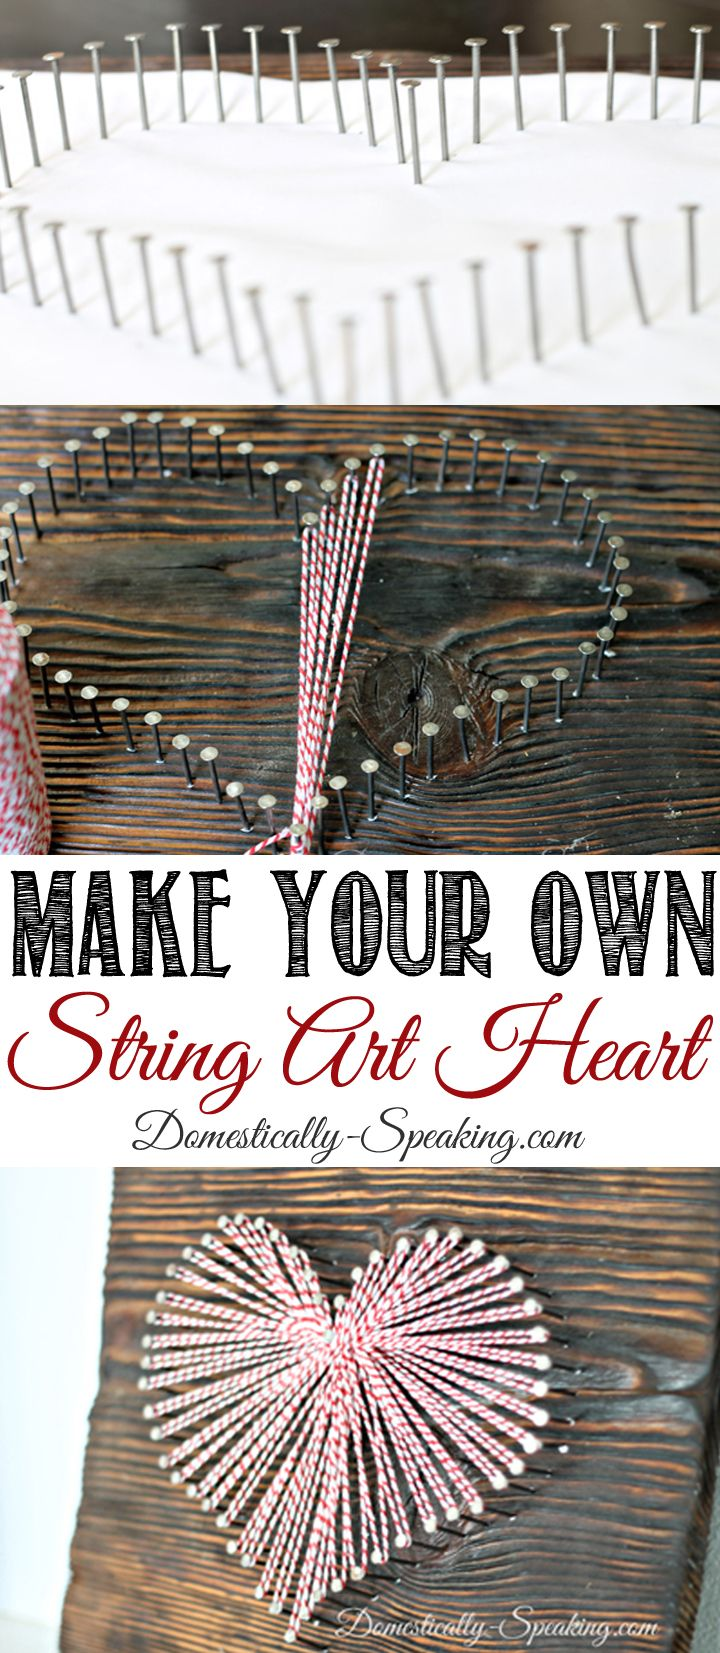 Make Your Own String Art Heart | Valentine's Day DIY | Decorations | Gift Ideas